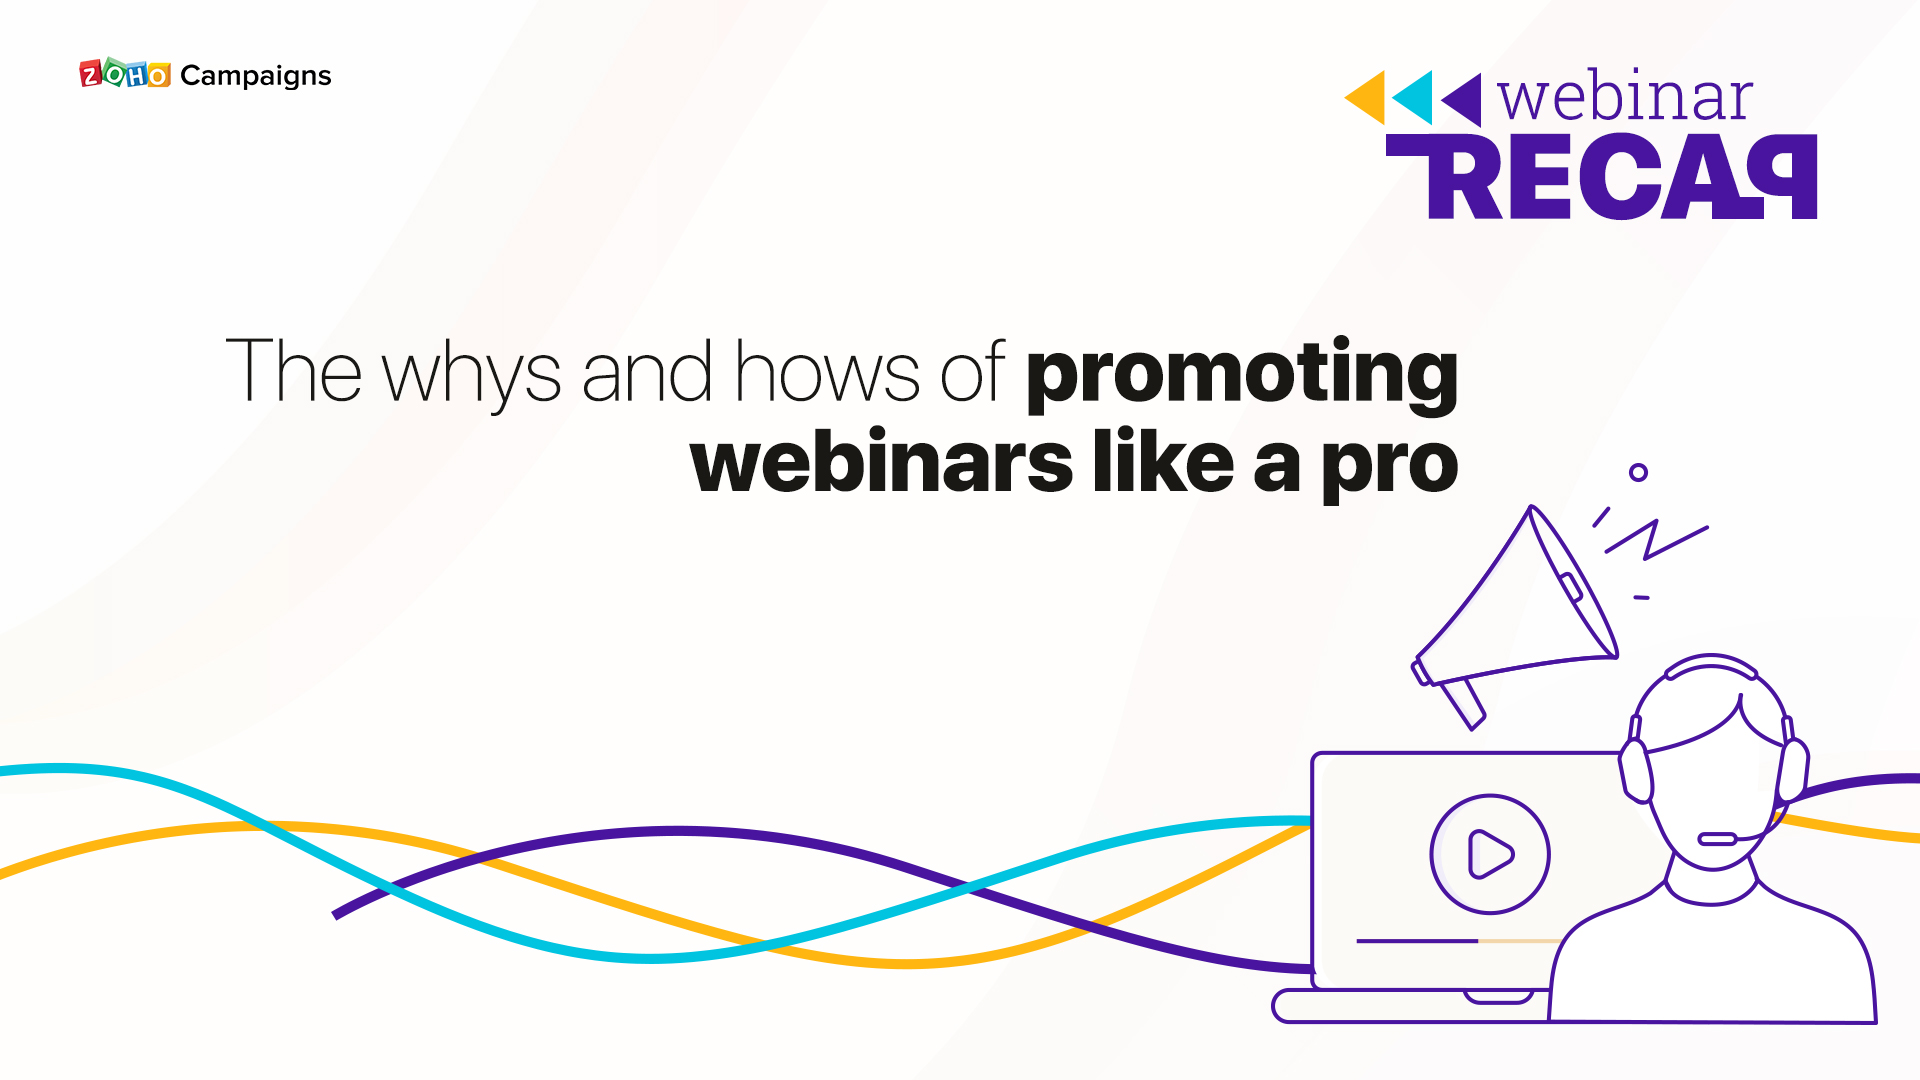 Webinar Recap: The whys and hows of promoting webinars like a pro